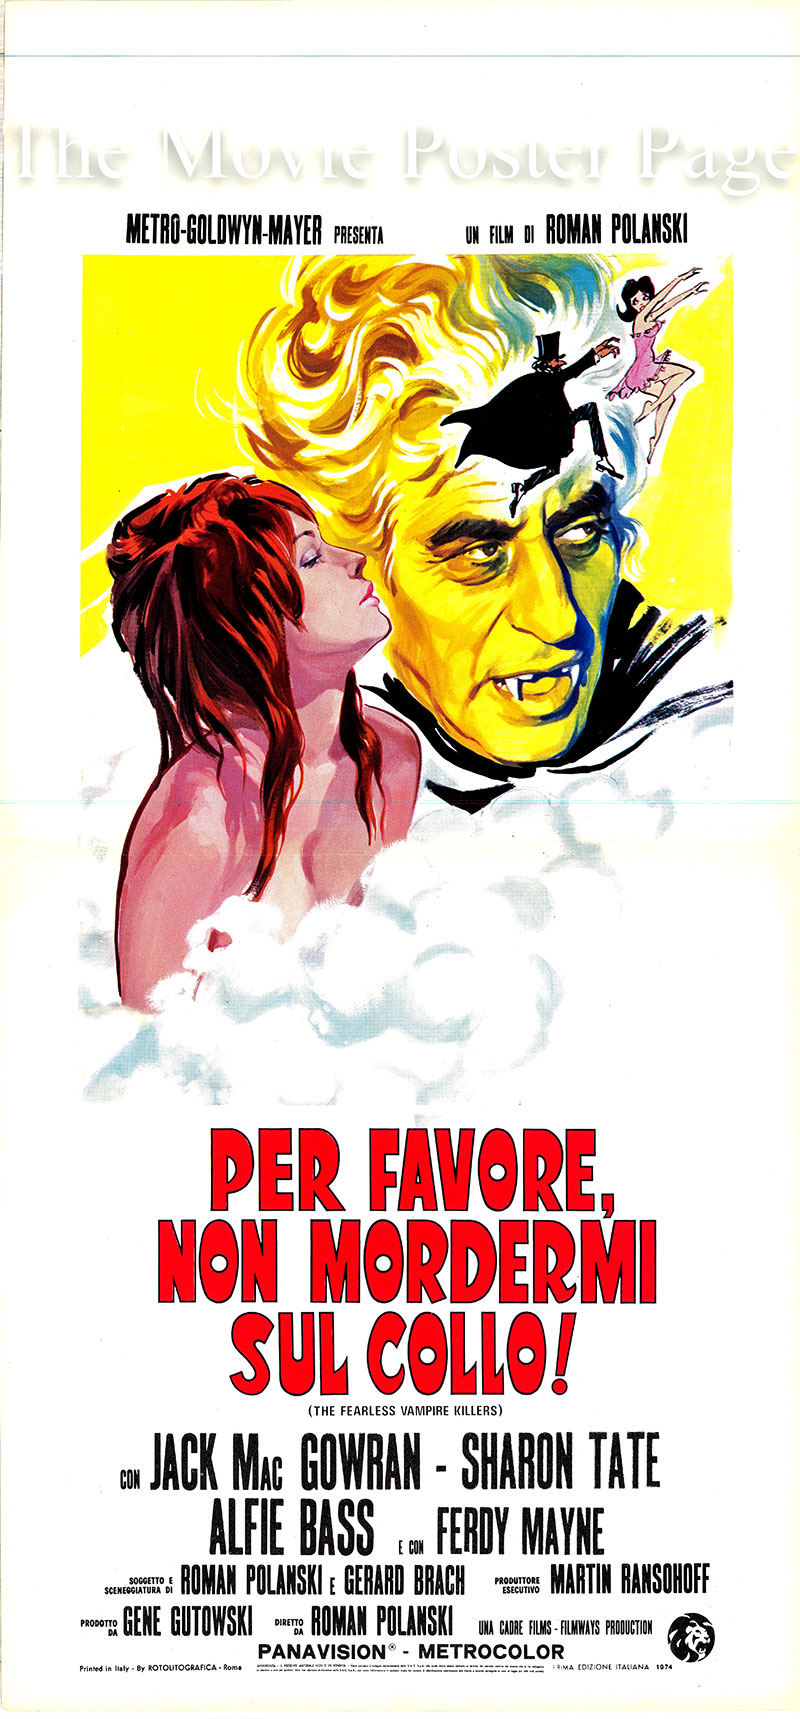 This is an Italian locandina poster for a 1977 rerelease of the 1967 Roman Polanski film <i>The Fearless Vampire Killers</i> starring Jack MacGowran as Professor Abronsius.